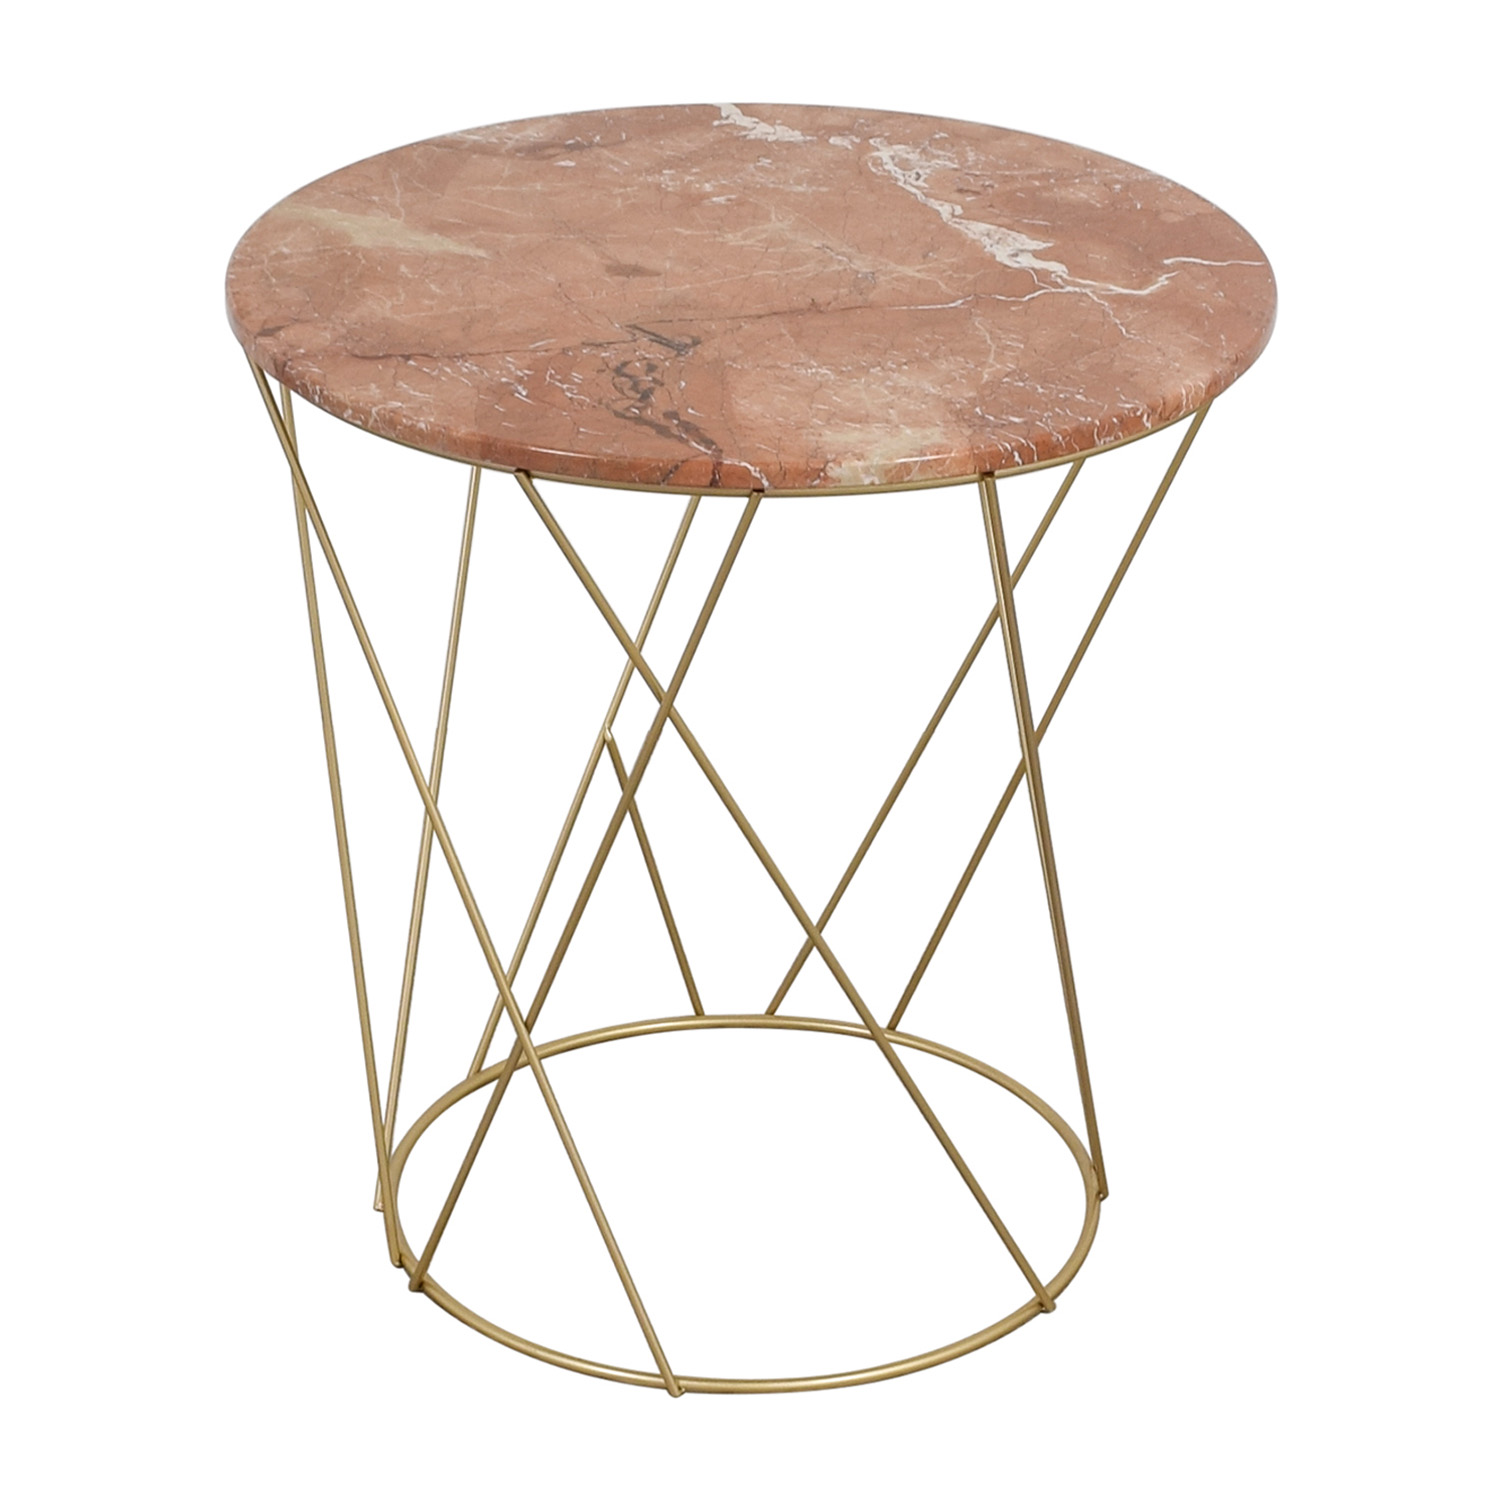 off lotus pink gold round marble table tables used metal accent target storage furniture couch feet black gloss coffee bar chairs armless chair bench silver moroccan drum bronze